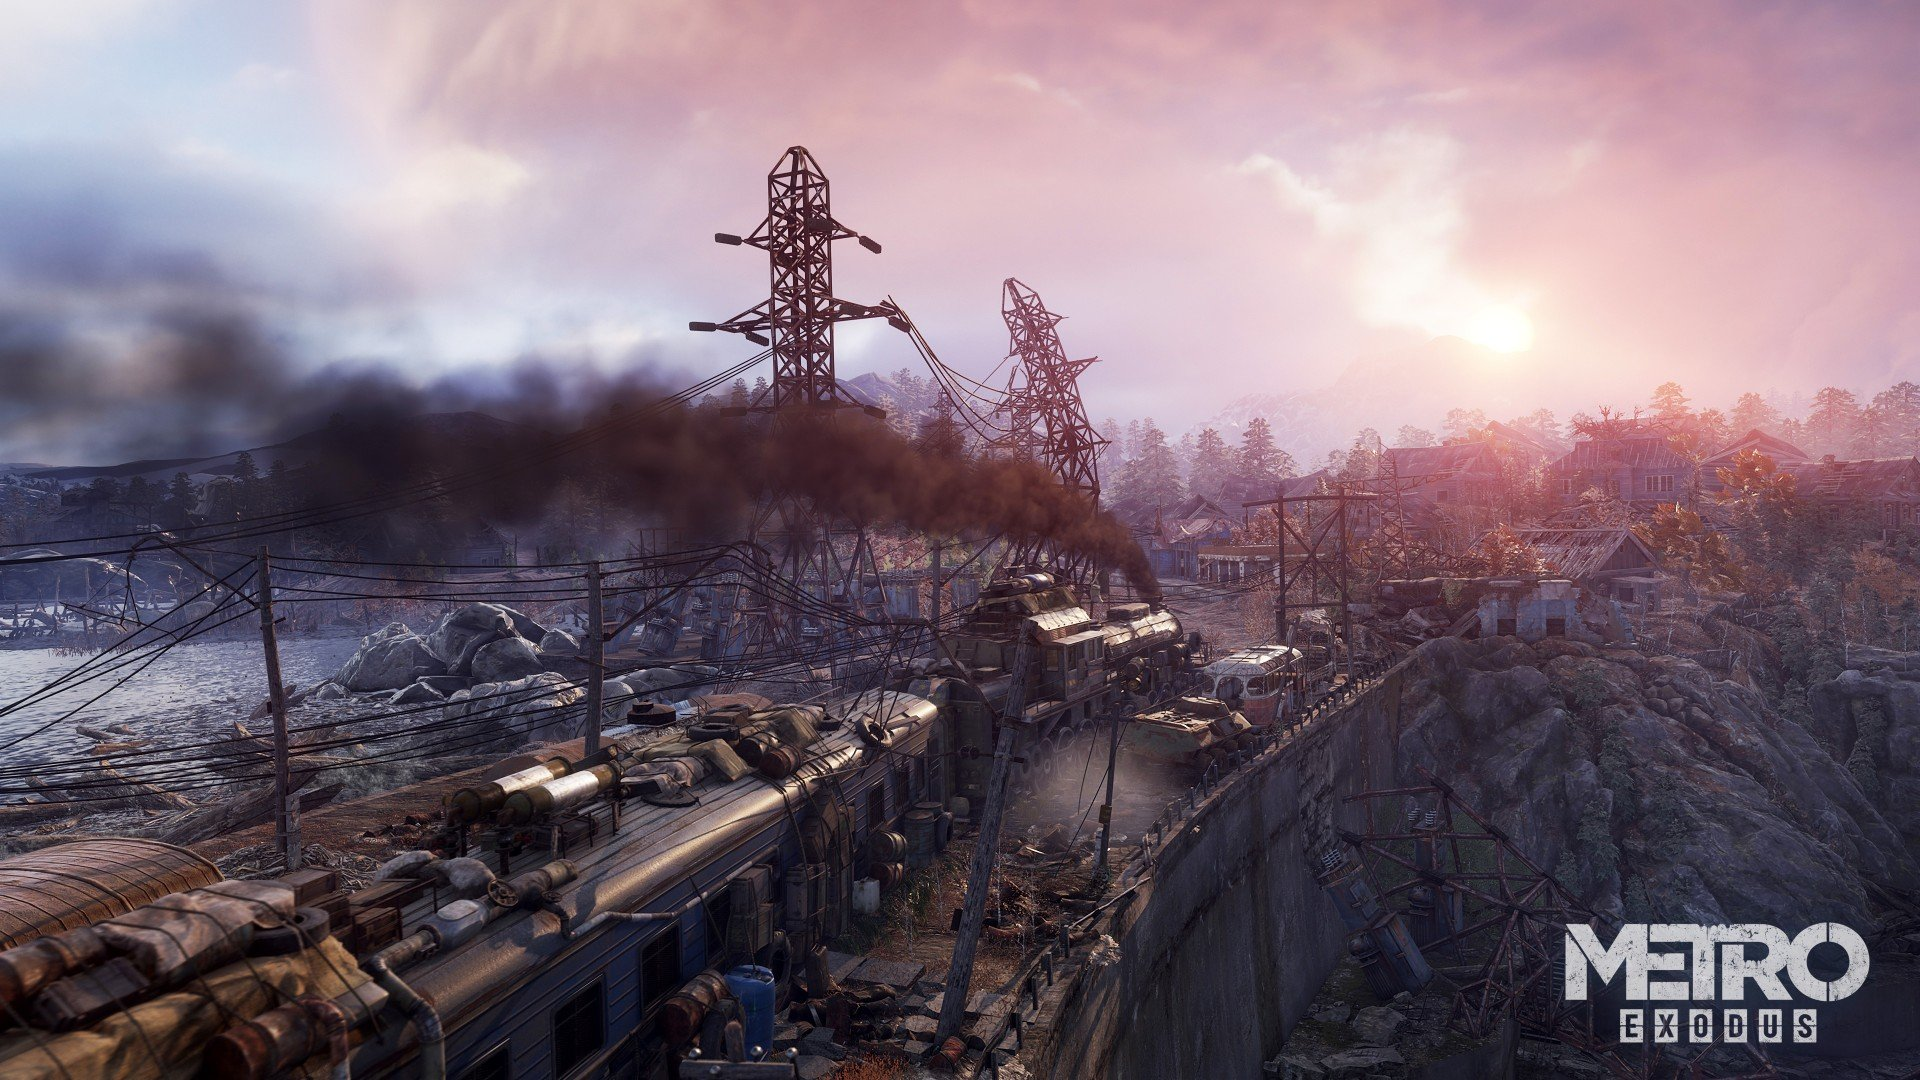 Metro: Exodus is big, challenging, and beautiful screenshot